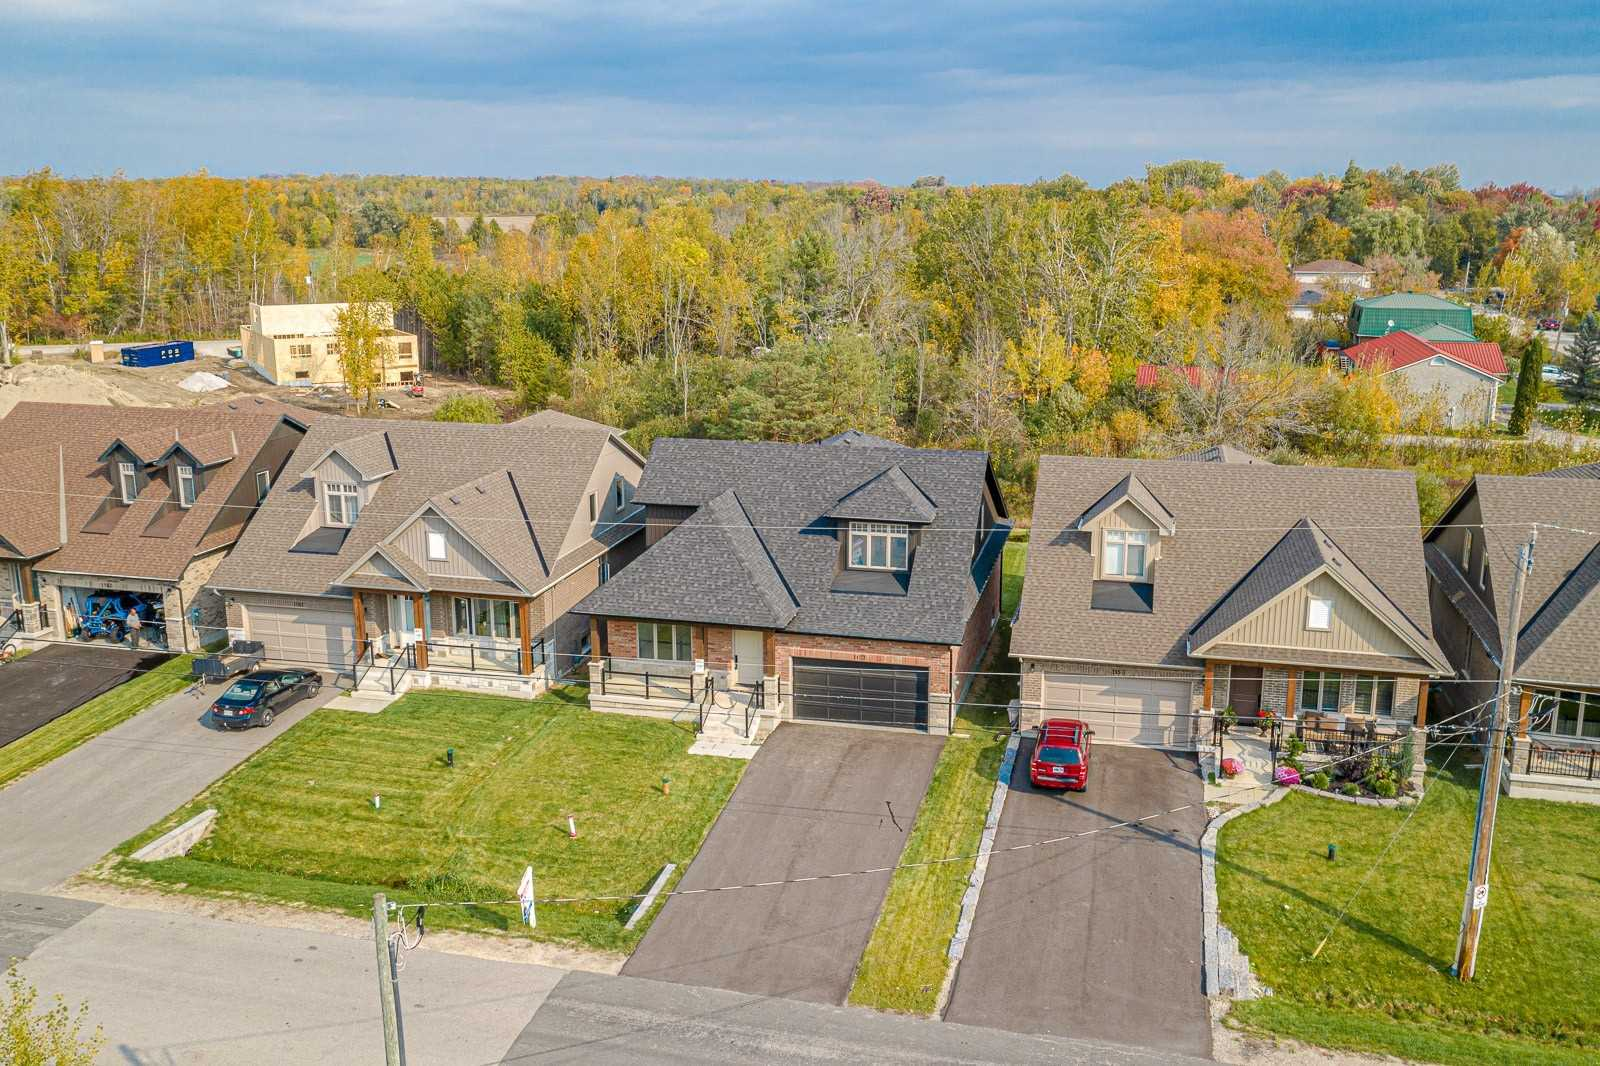 For Sale: 1157 Arnold Street, Innisfil, ON | 4 Bed, 4 Bath House for $1159900.00. See 40 photos!